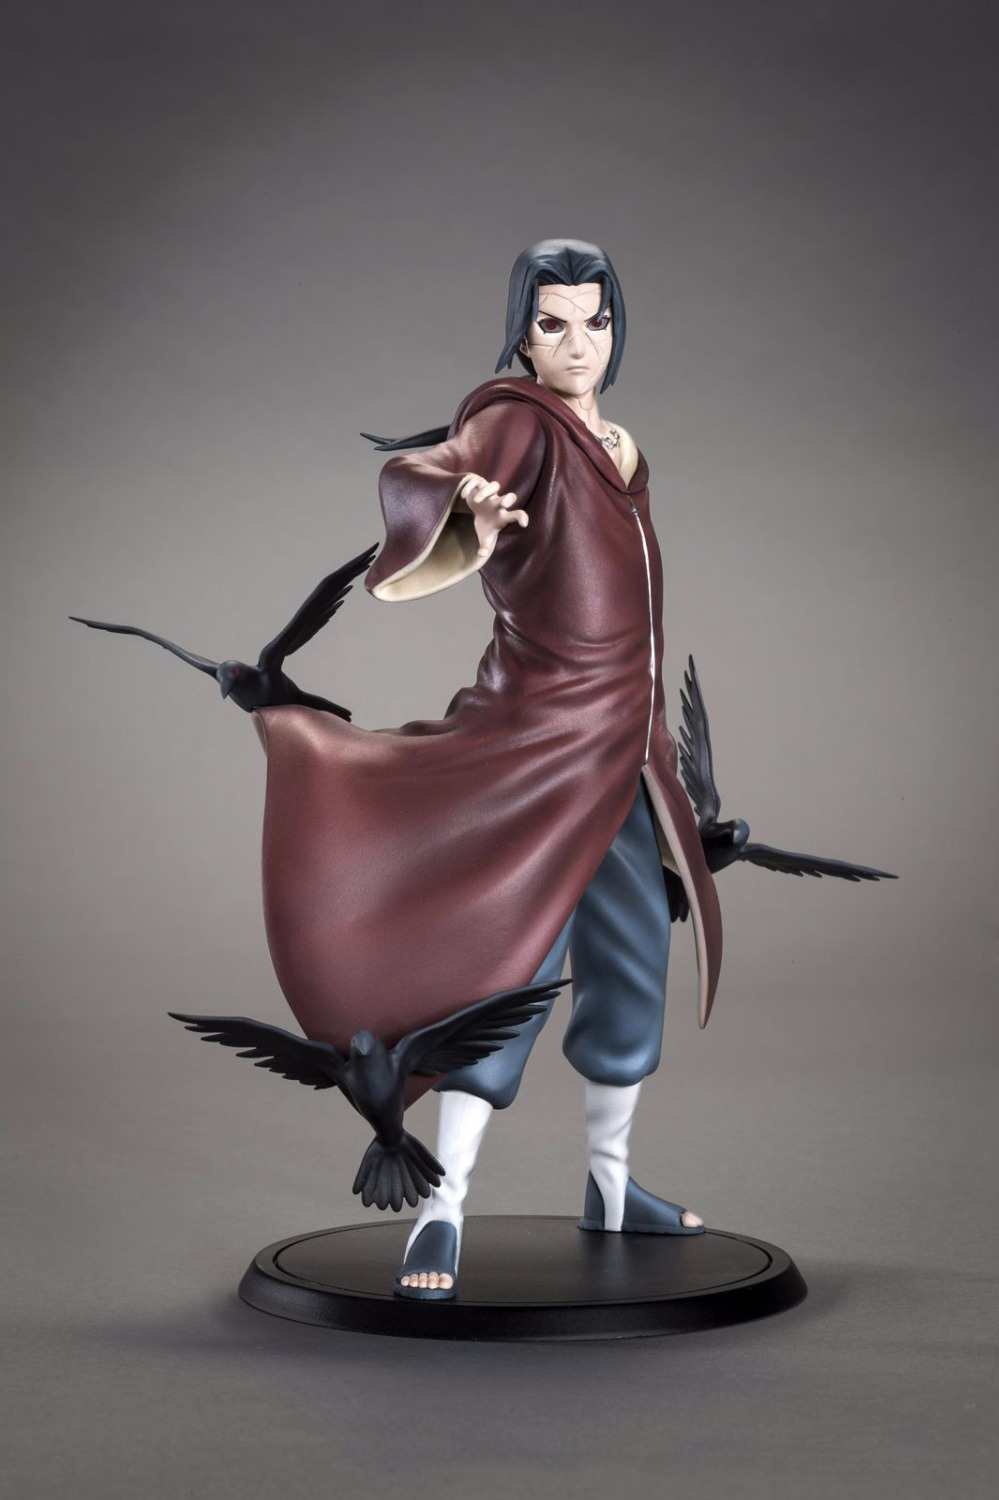 J G Anime Naruto Uchiha Itachi 1/8 Scale Painted Figure Uchiha Itachi PVC Action Figure Collectible Model Toy 17cm Brinquedos dragon ball z broli 1 8 scale painted figure super saiyan 3 broli doll pvc action figure collectible model toy 17cm kt3195